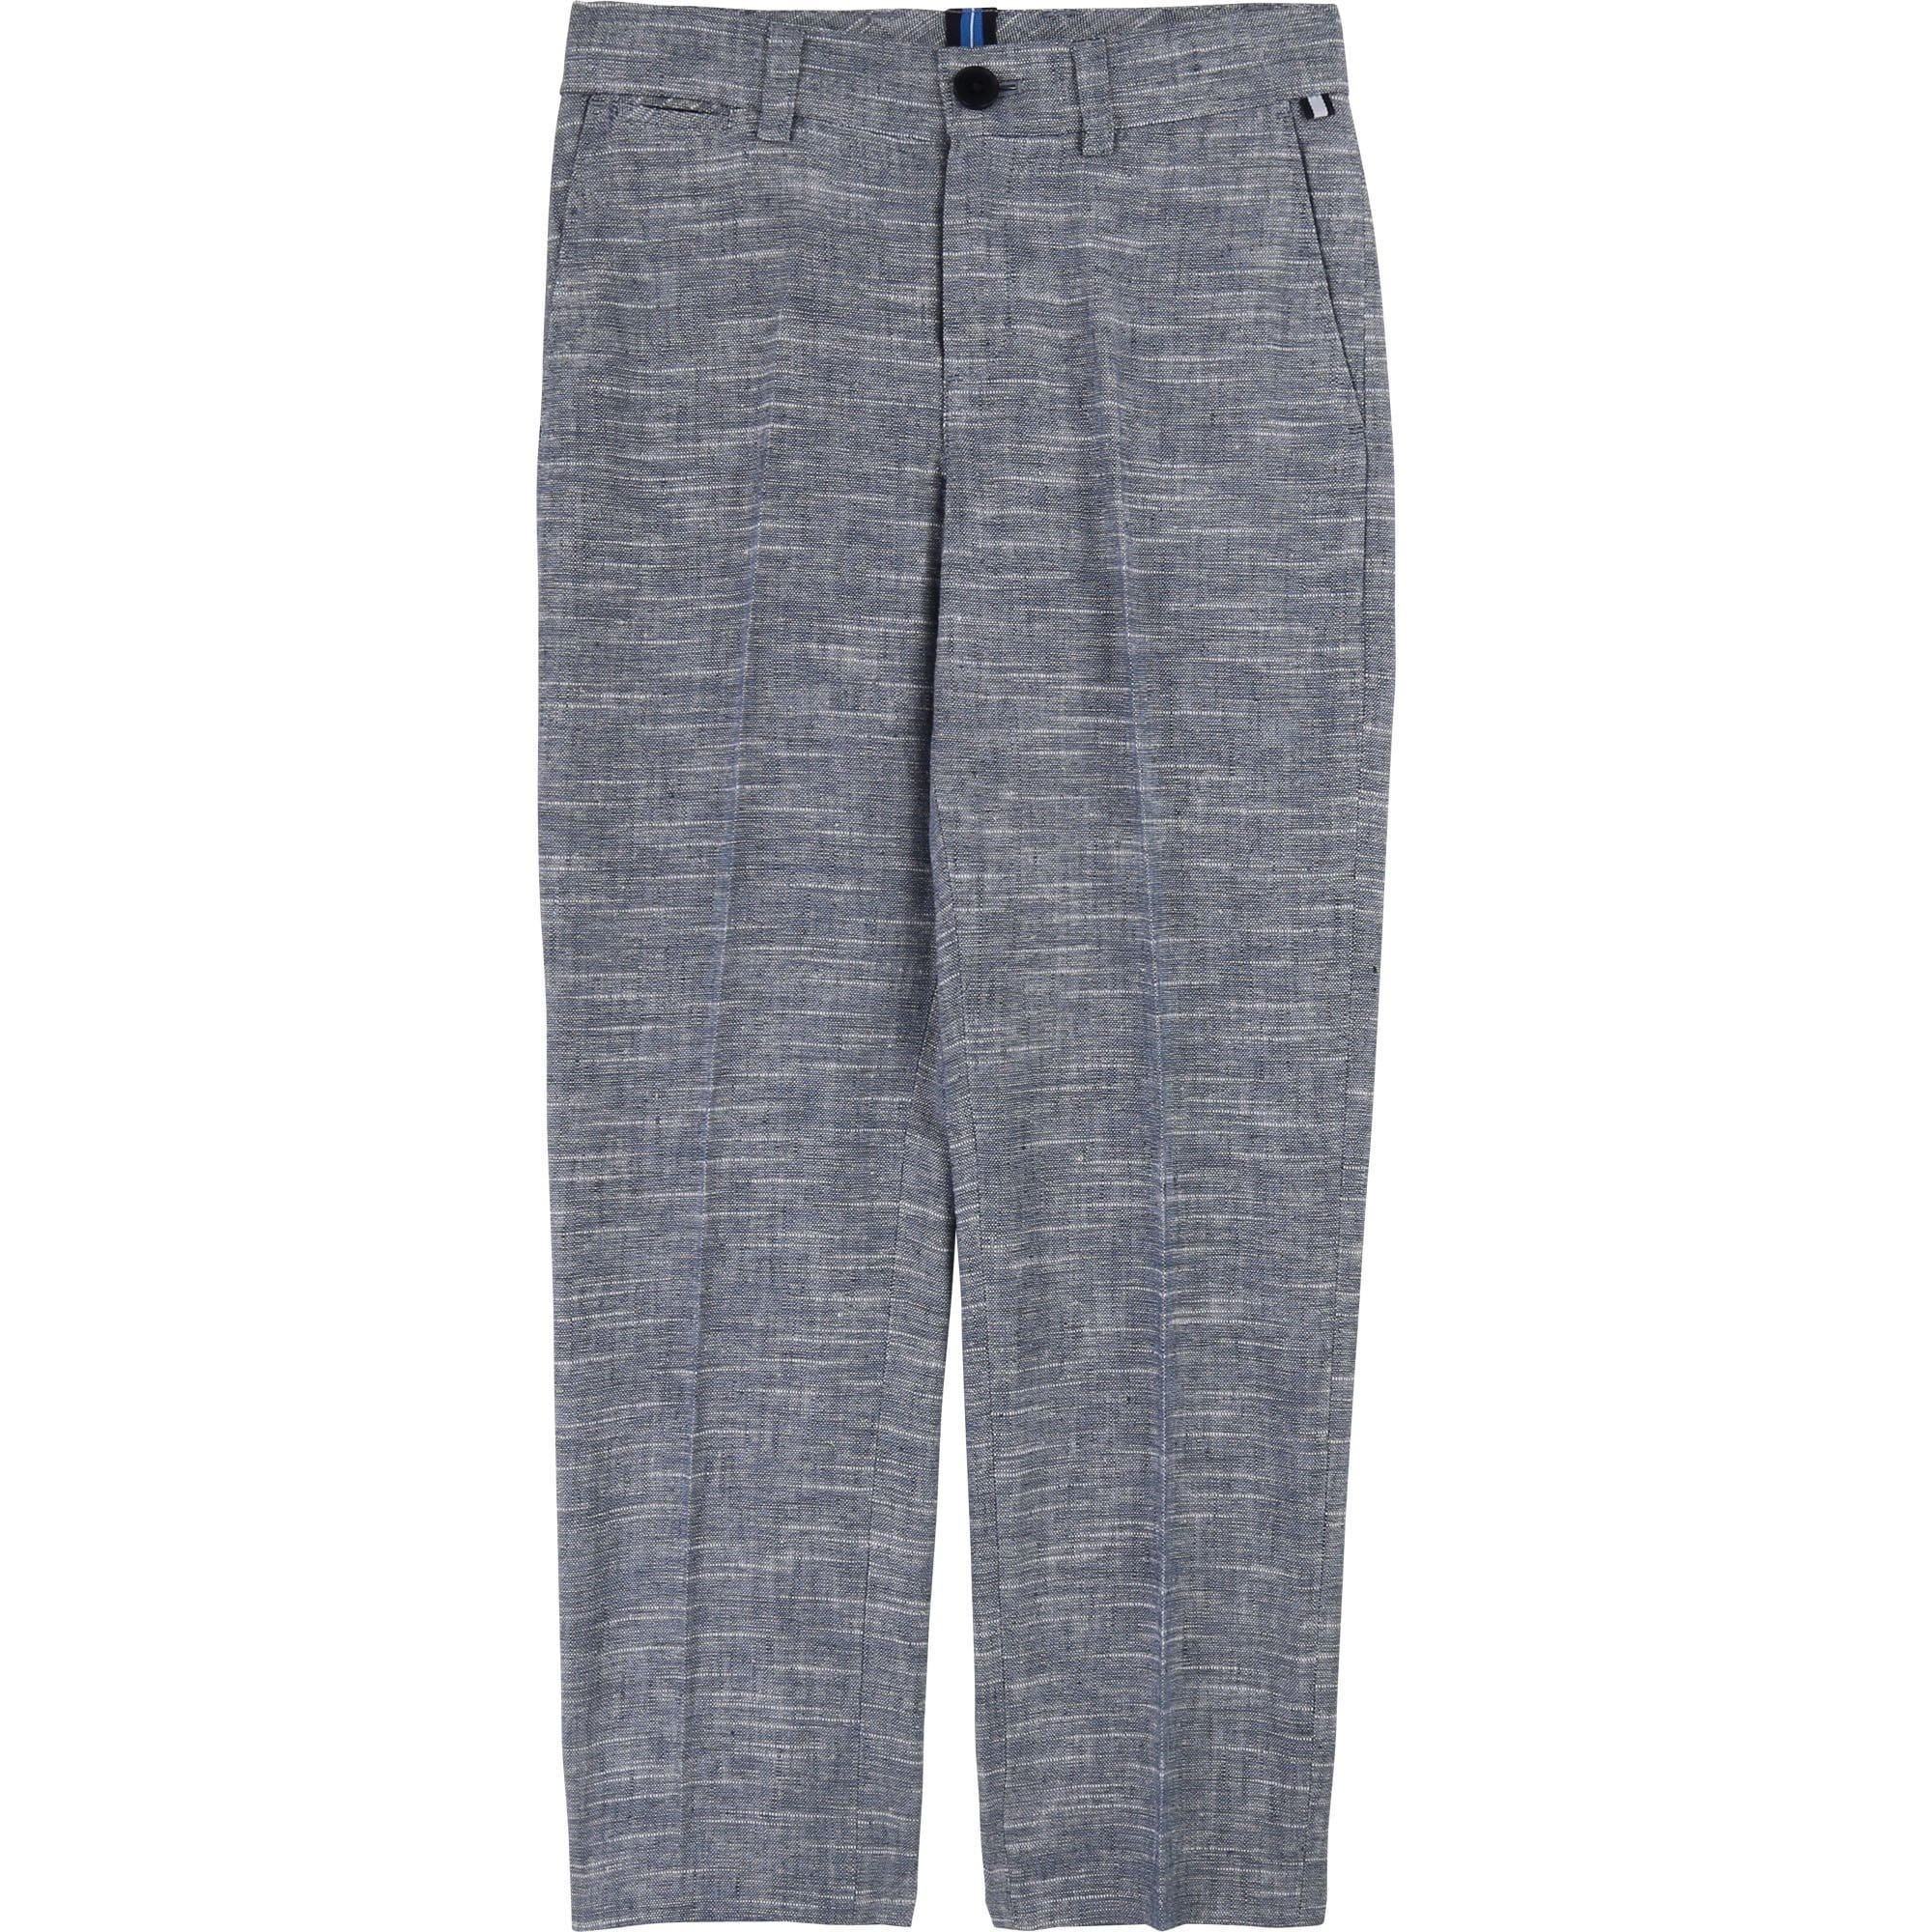 Hugo Boss Suit Blue Trouser (4703837585539)